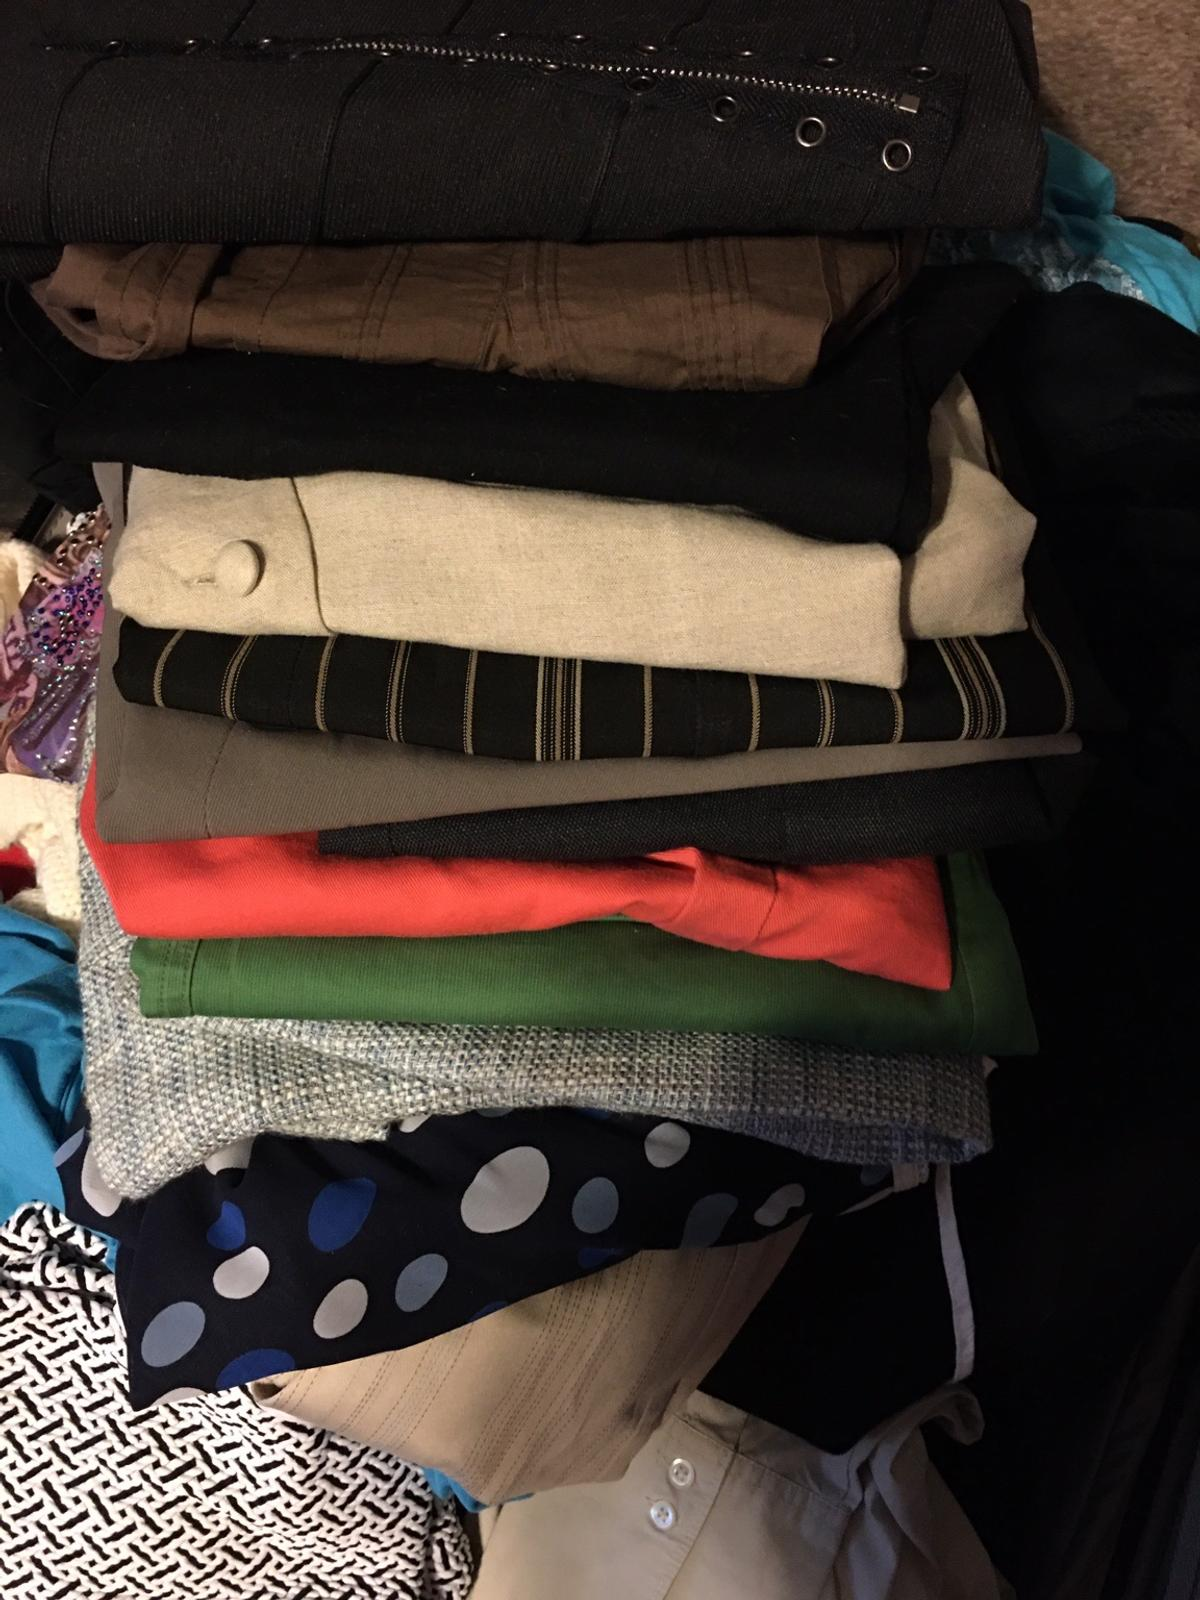 Wardrobe Size 4 Over 200 items of Clothing Some w tags still on Guess (A lot of Guess! Clothes) Ann Taylor Tahari  The Limited Boutique Attire And many more name brands 48 Dresses 12 Biz Suits 14 Pants Capris Jeans Skirts 33 Tops 34 Camisoles And more